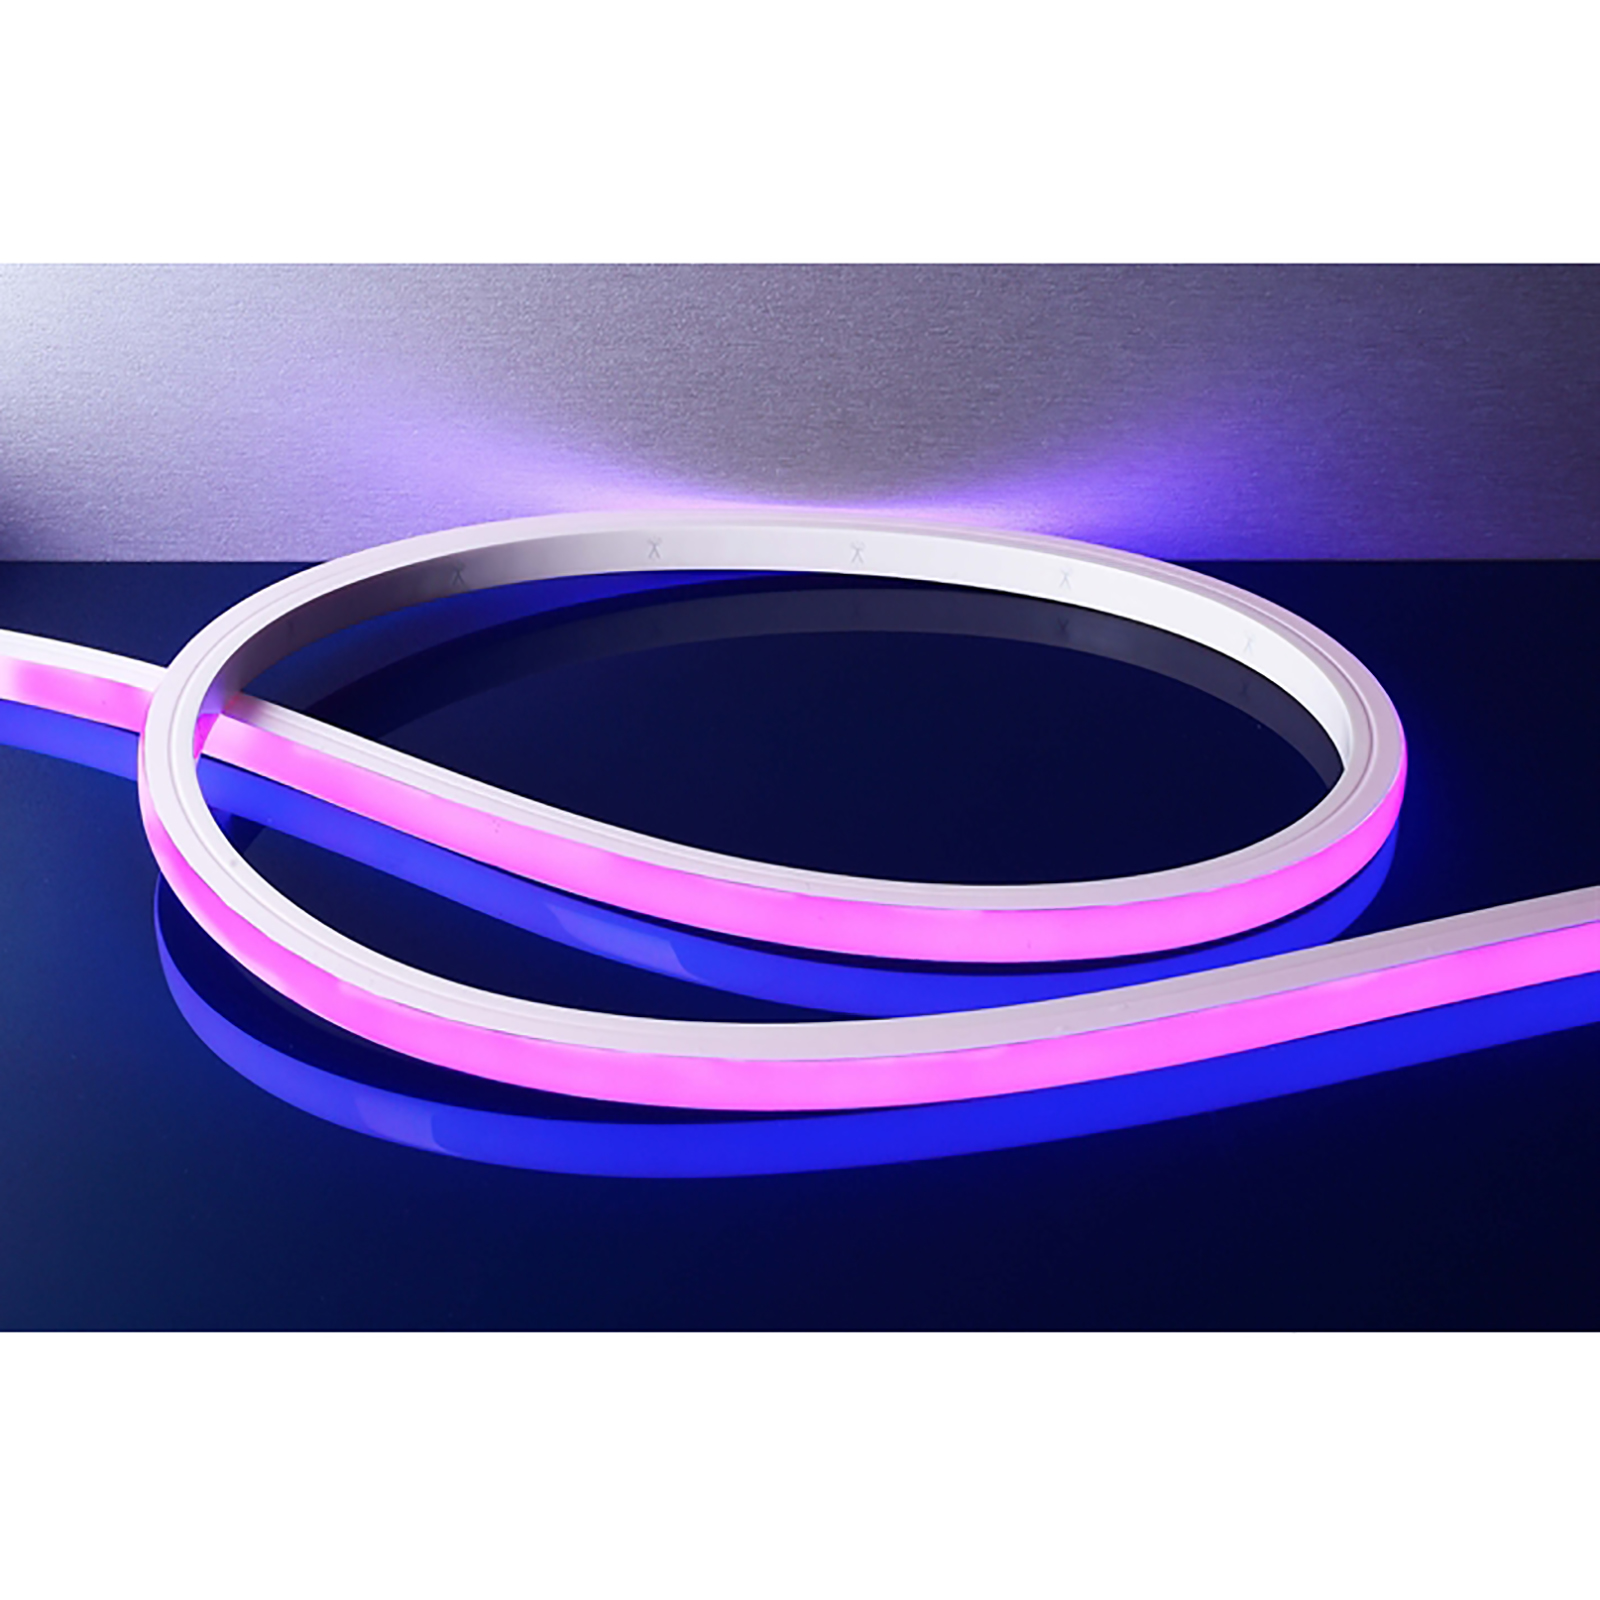 Strip LED flex neon flexible 43W RGB 3000K light swimming pool fountain IP68 24V